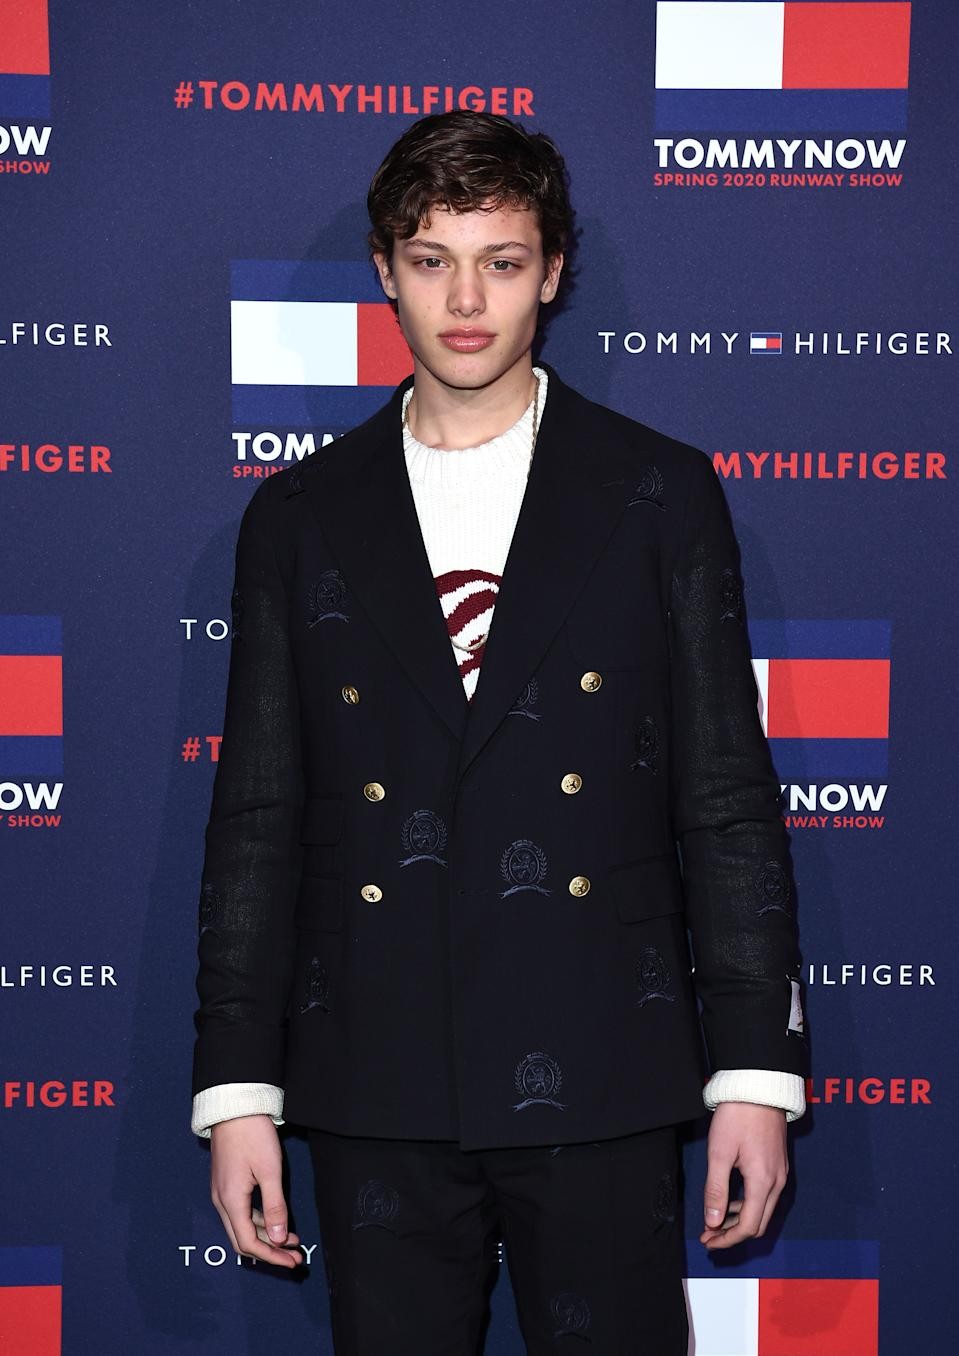 Bobby Brazier attends the TommyNow show during London Fashion Week February 2020 at the Tate Modern on February 16, 2020 in London, England. (Photo by Jeff Spicer/BFC/Getty Images for BFC)